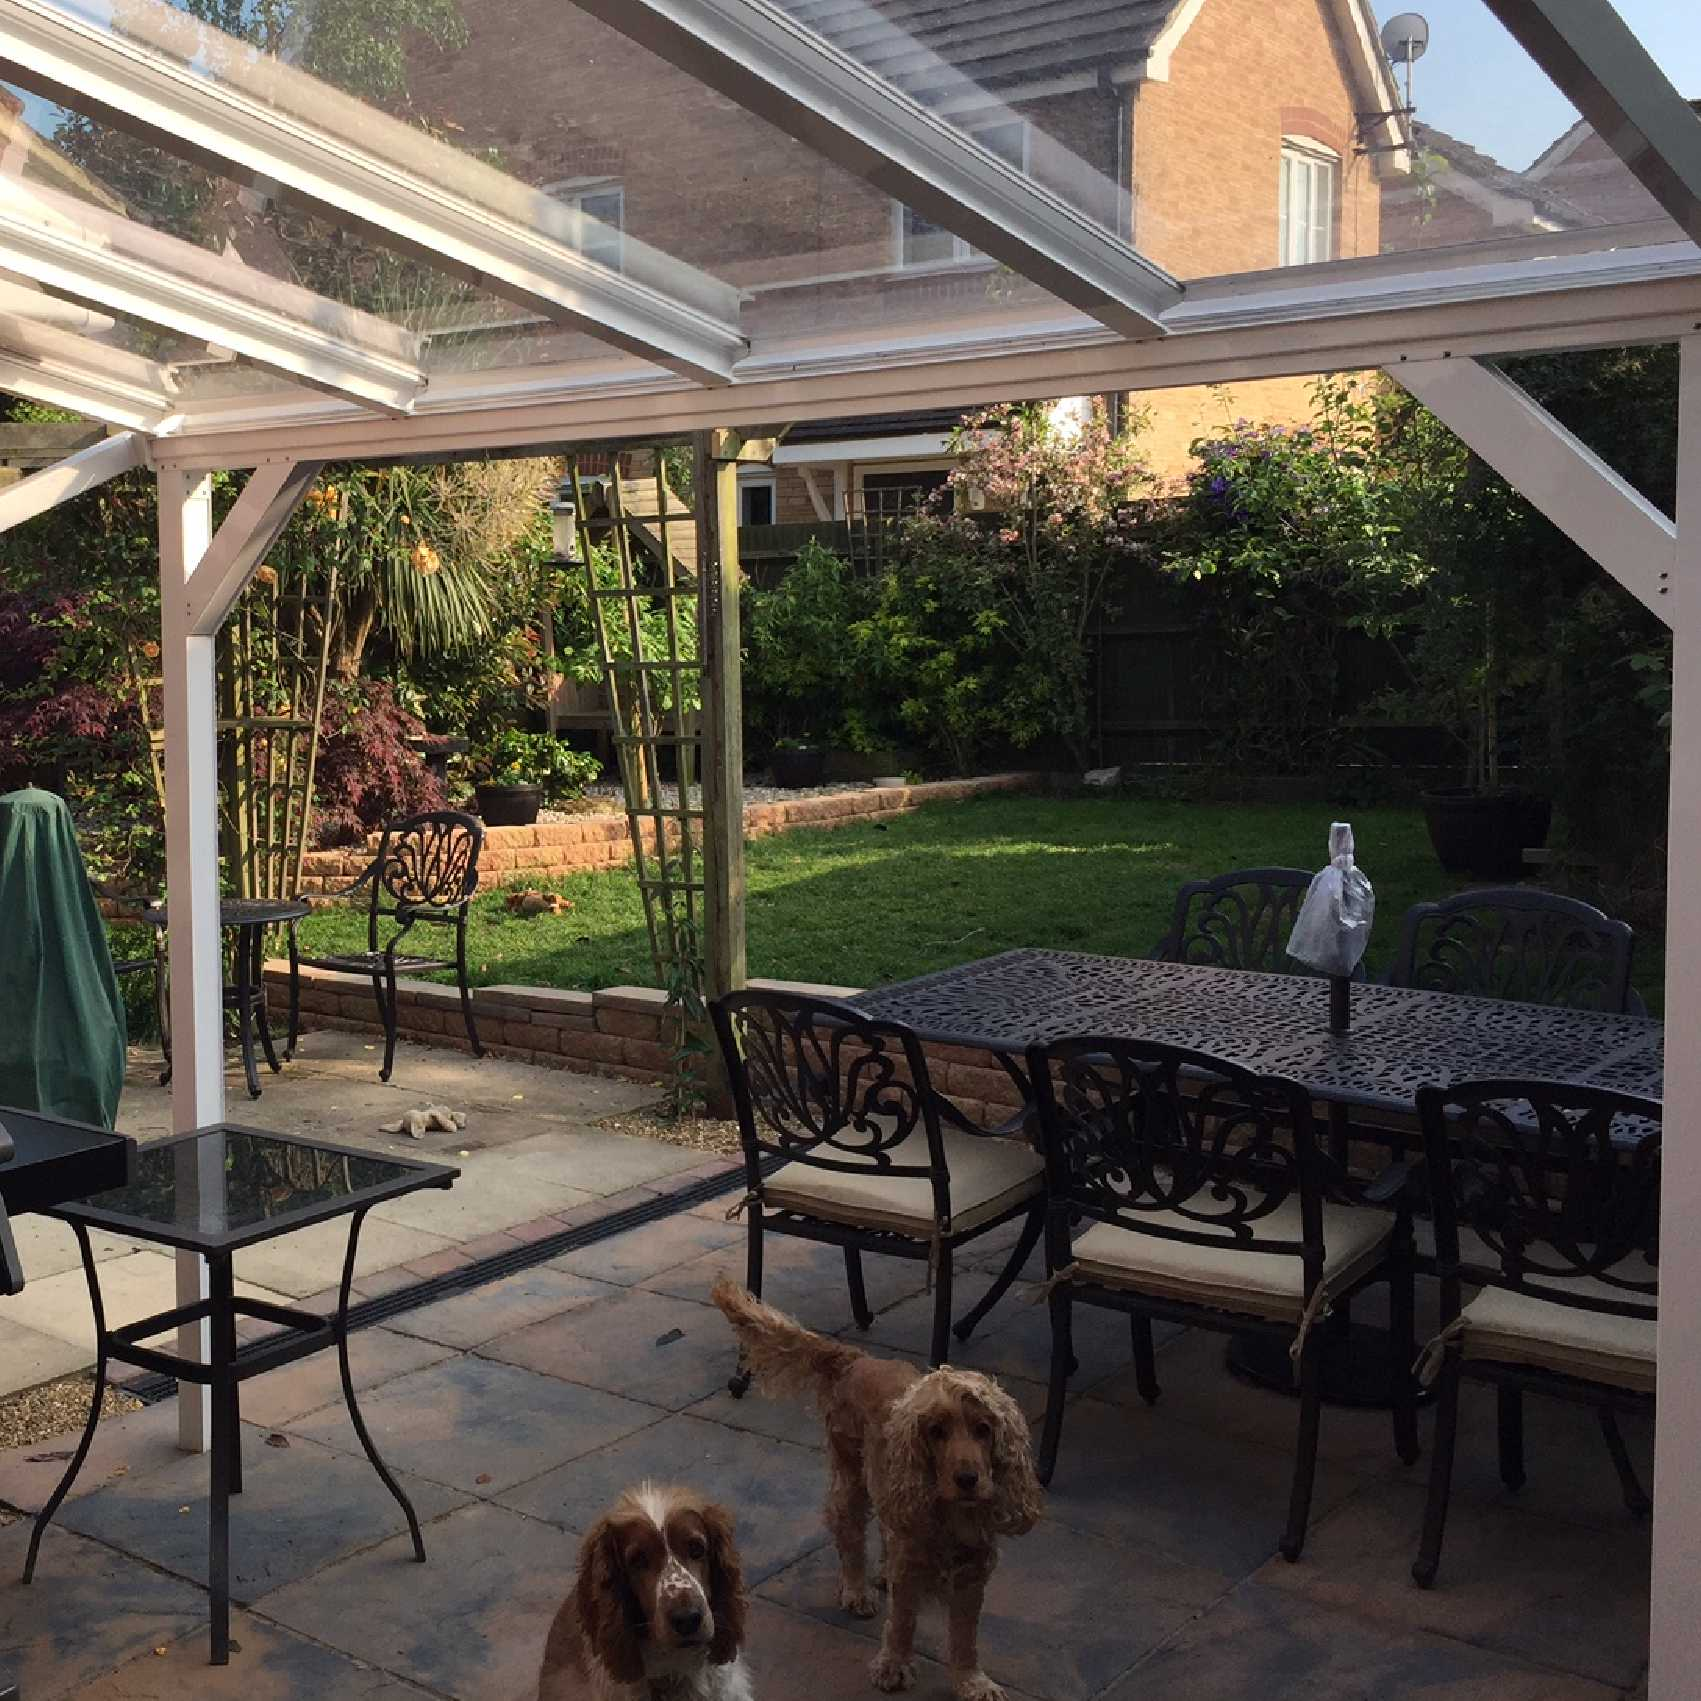 Affordable Omega Smart White Lean-To Canopy with 6mm Glass Clear Plate Polycarbonate Glazing - 4.2m (W) x 2.0m (P), (3) Supporting Posts